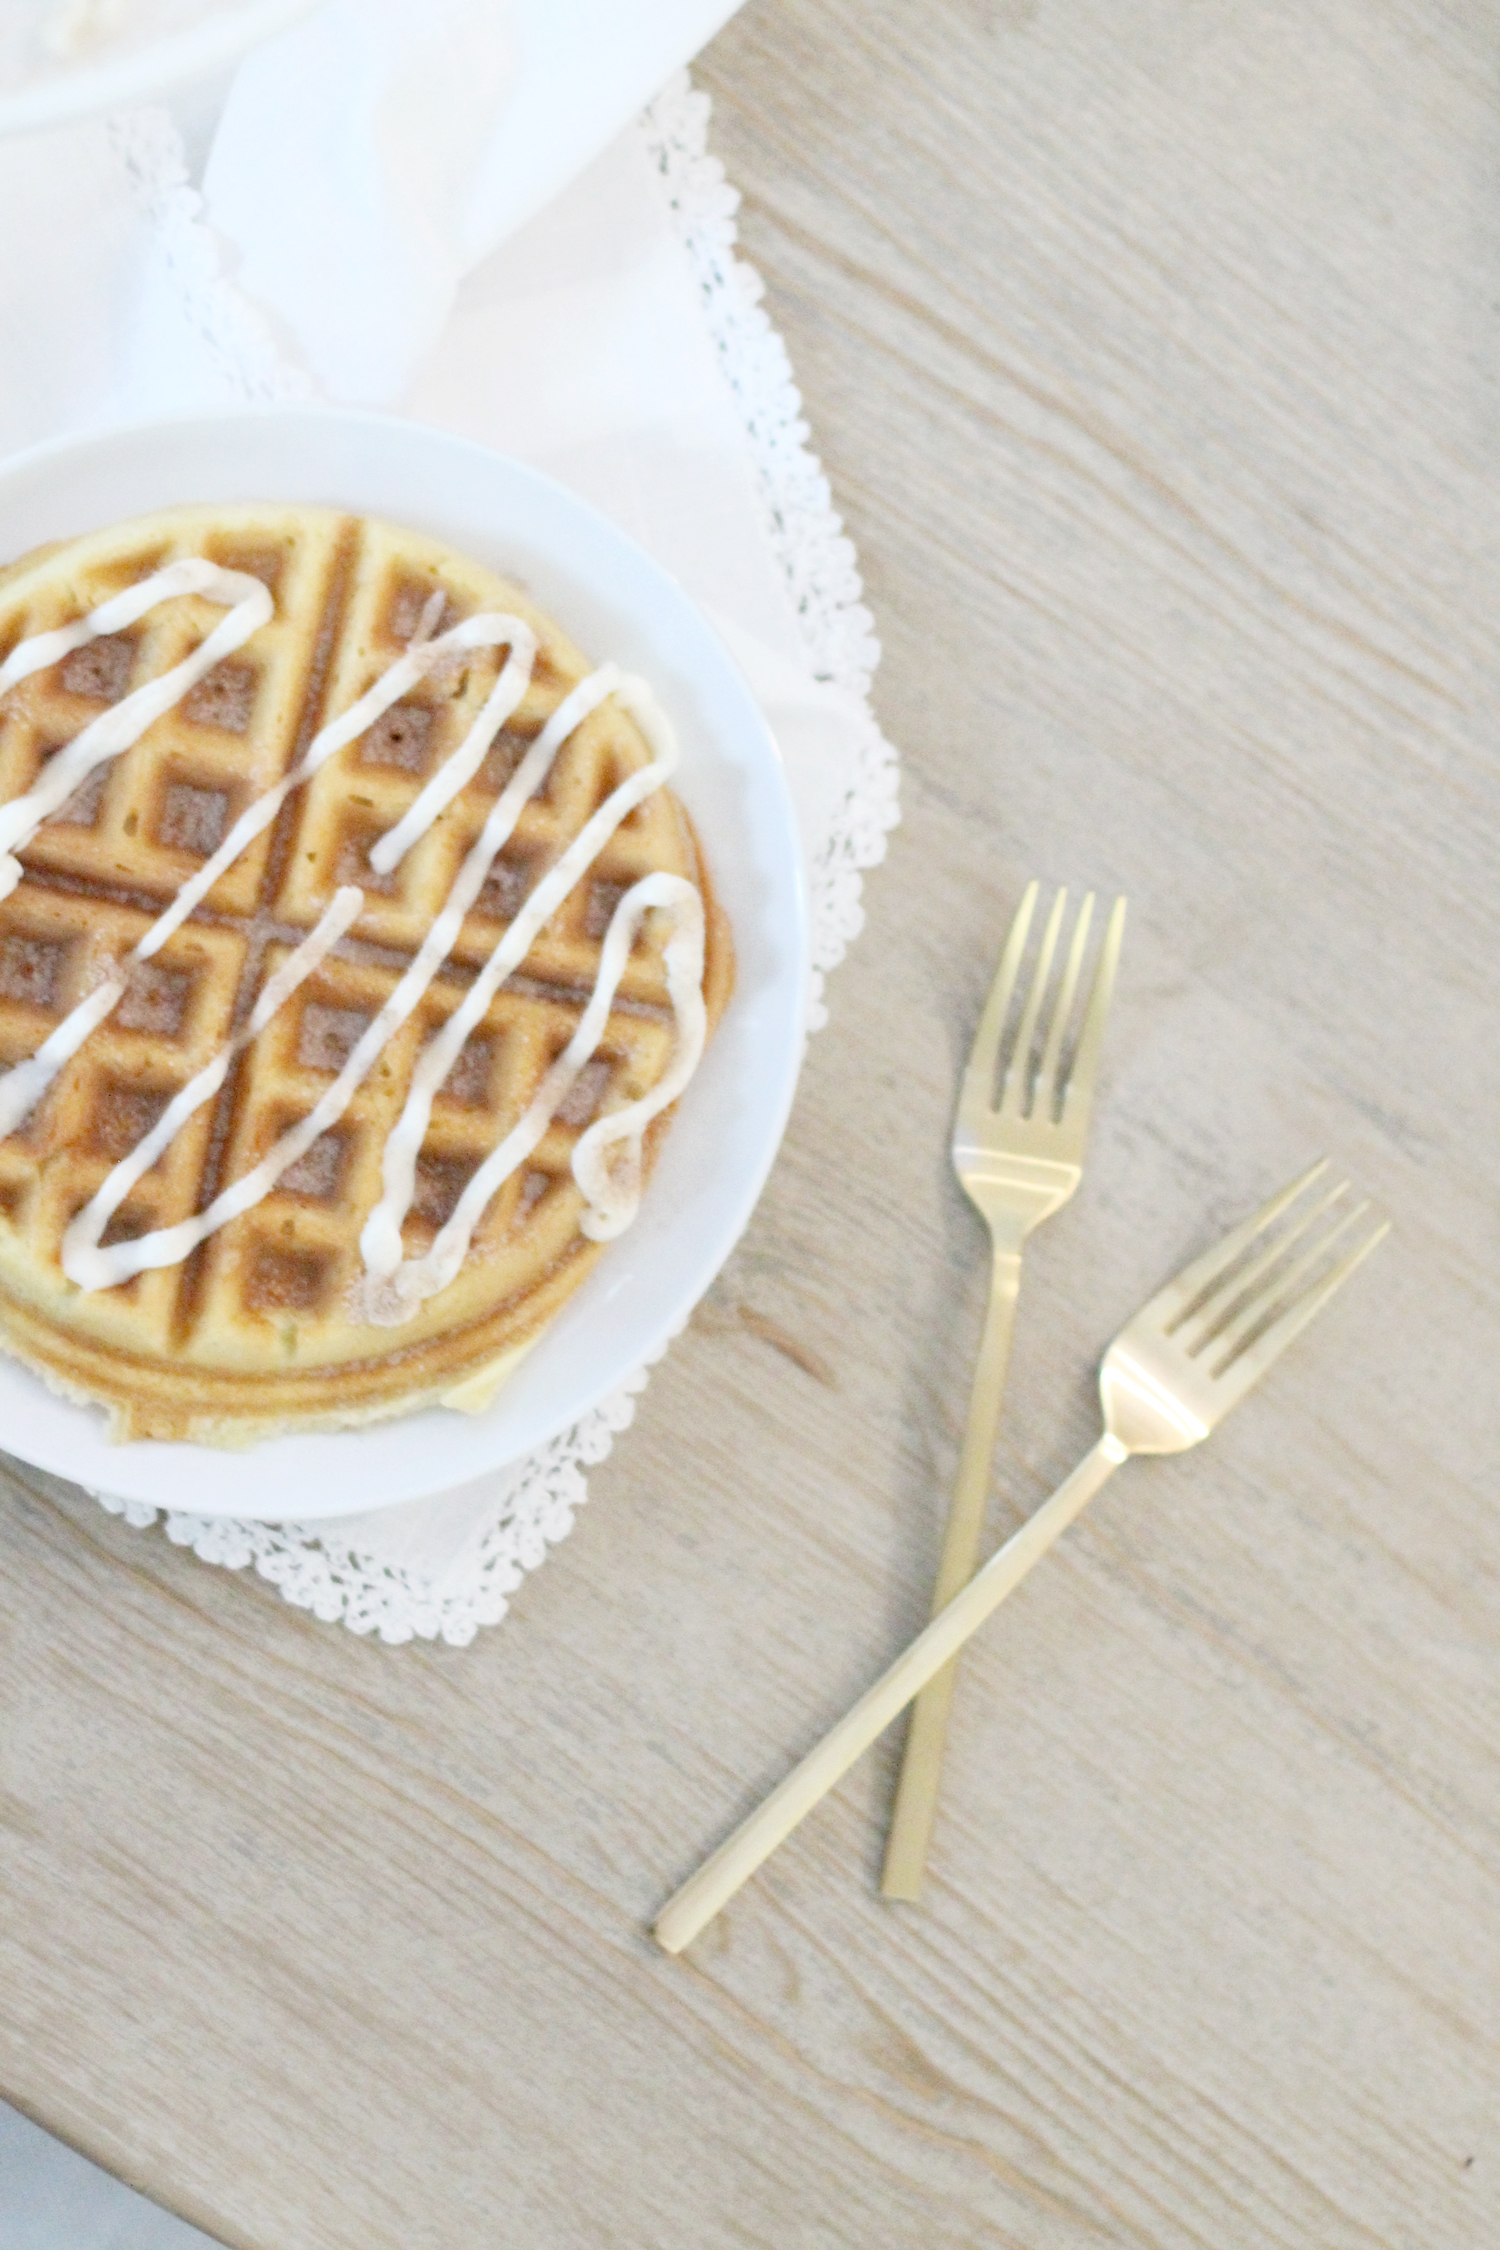 Cake-Mix-Cinnamon-Roll-Waffles-with-Vanilla-Frosting-Drizzle-and-Cinnamon-Sugar-topping---glitterinc.com